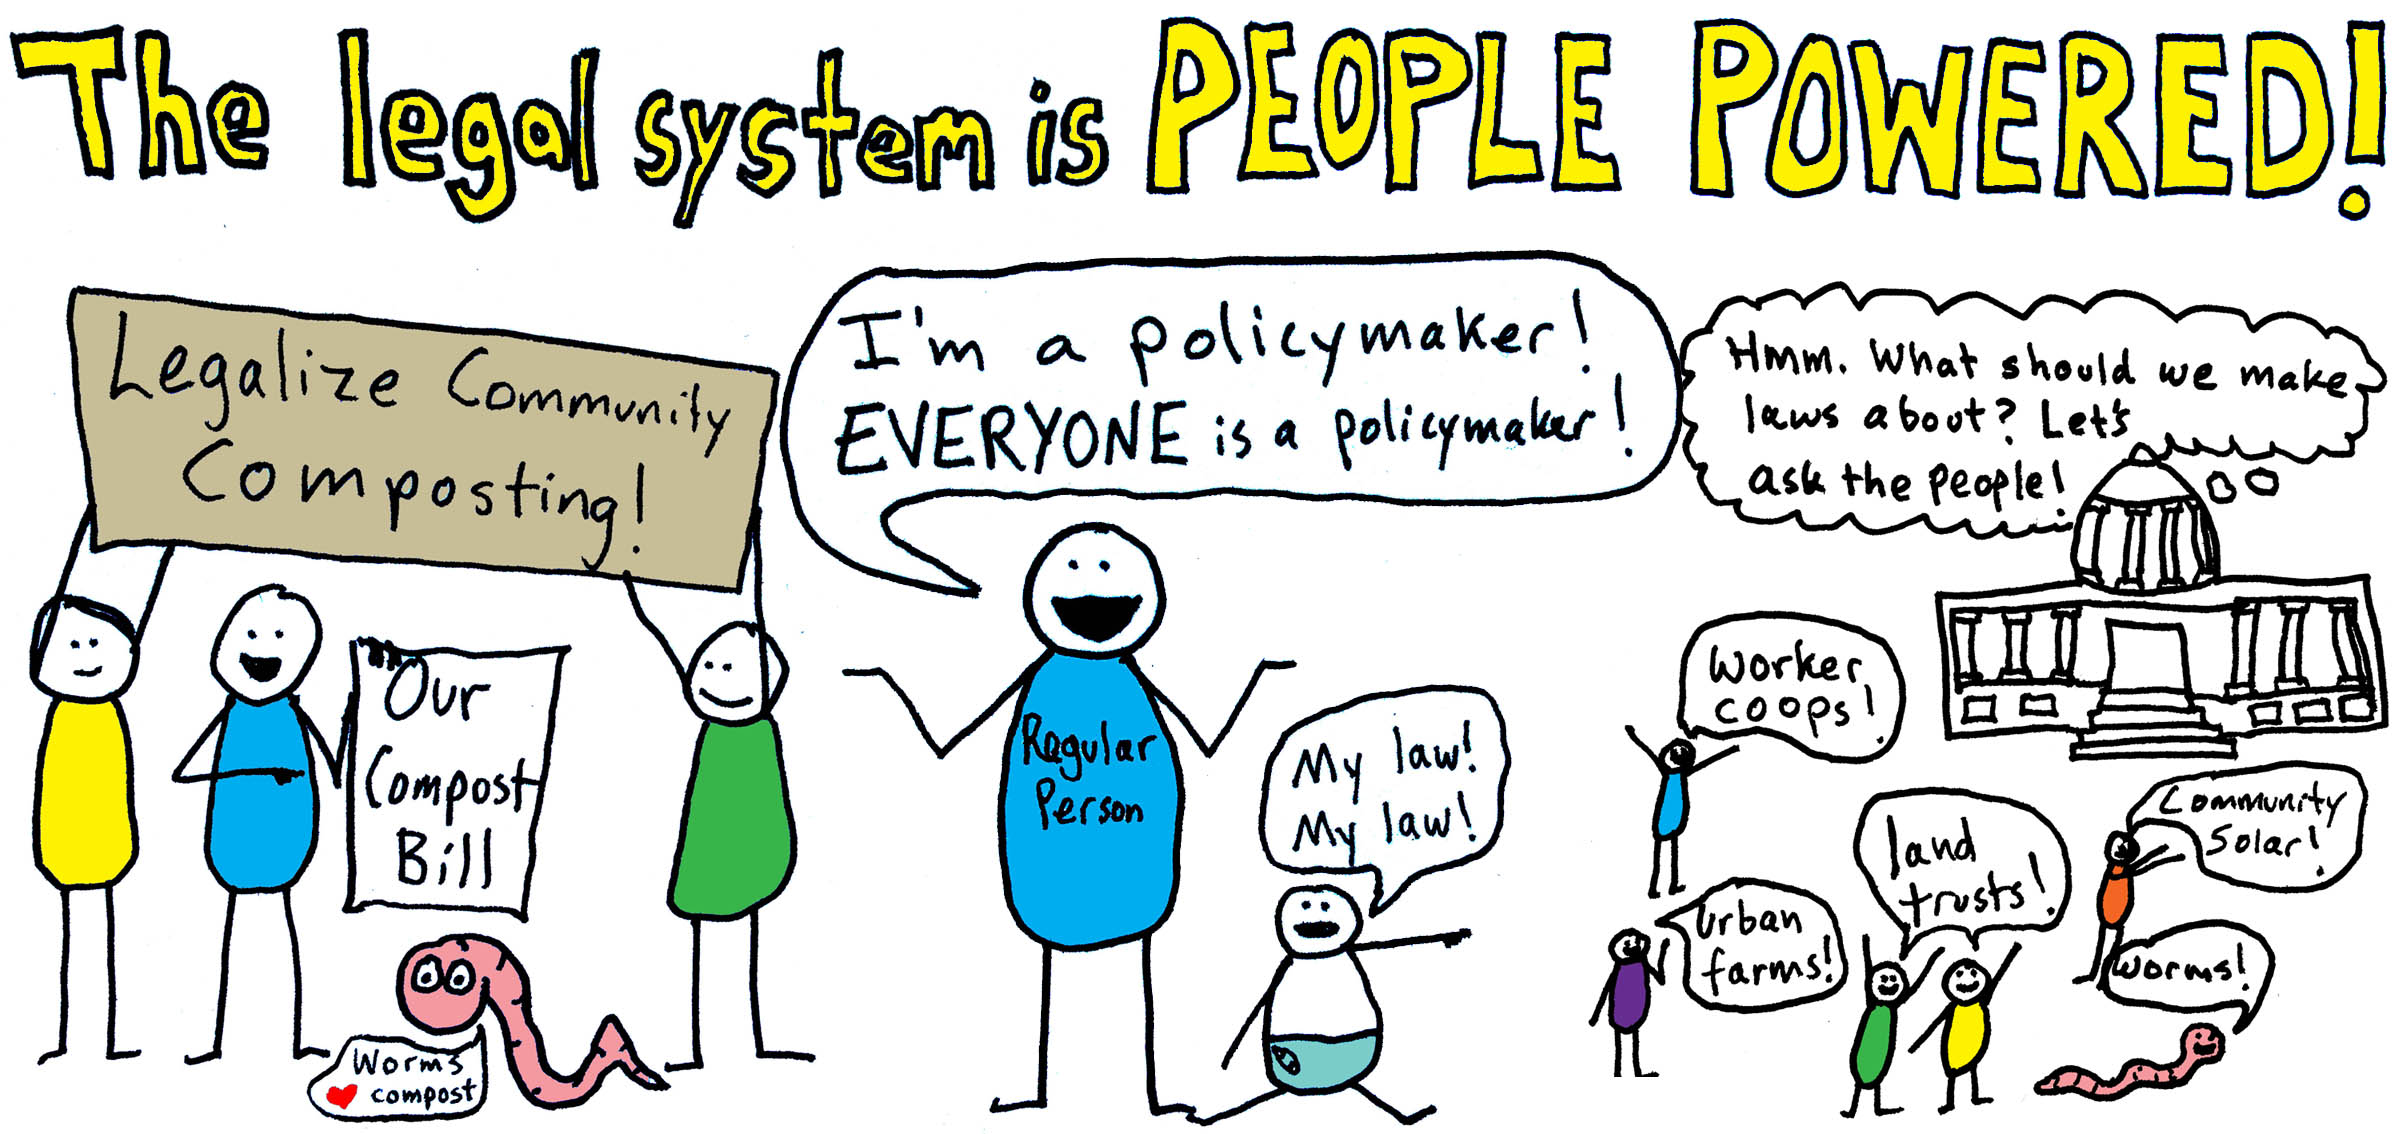 The legal system is people powered!